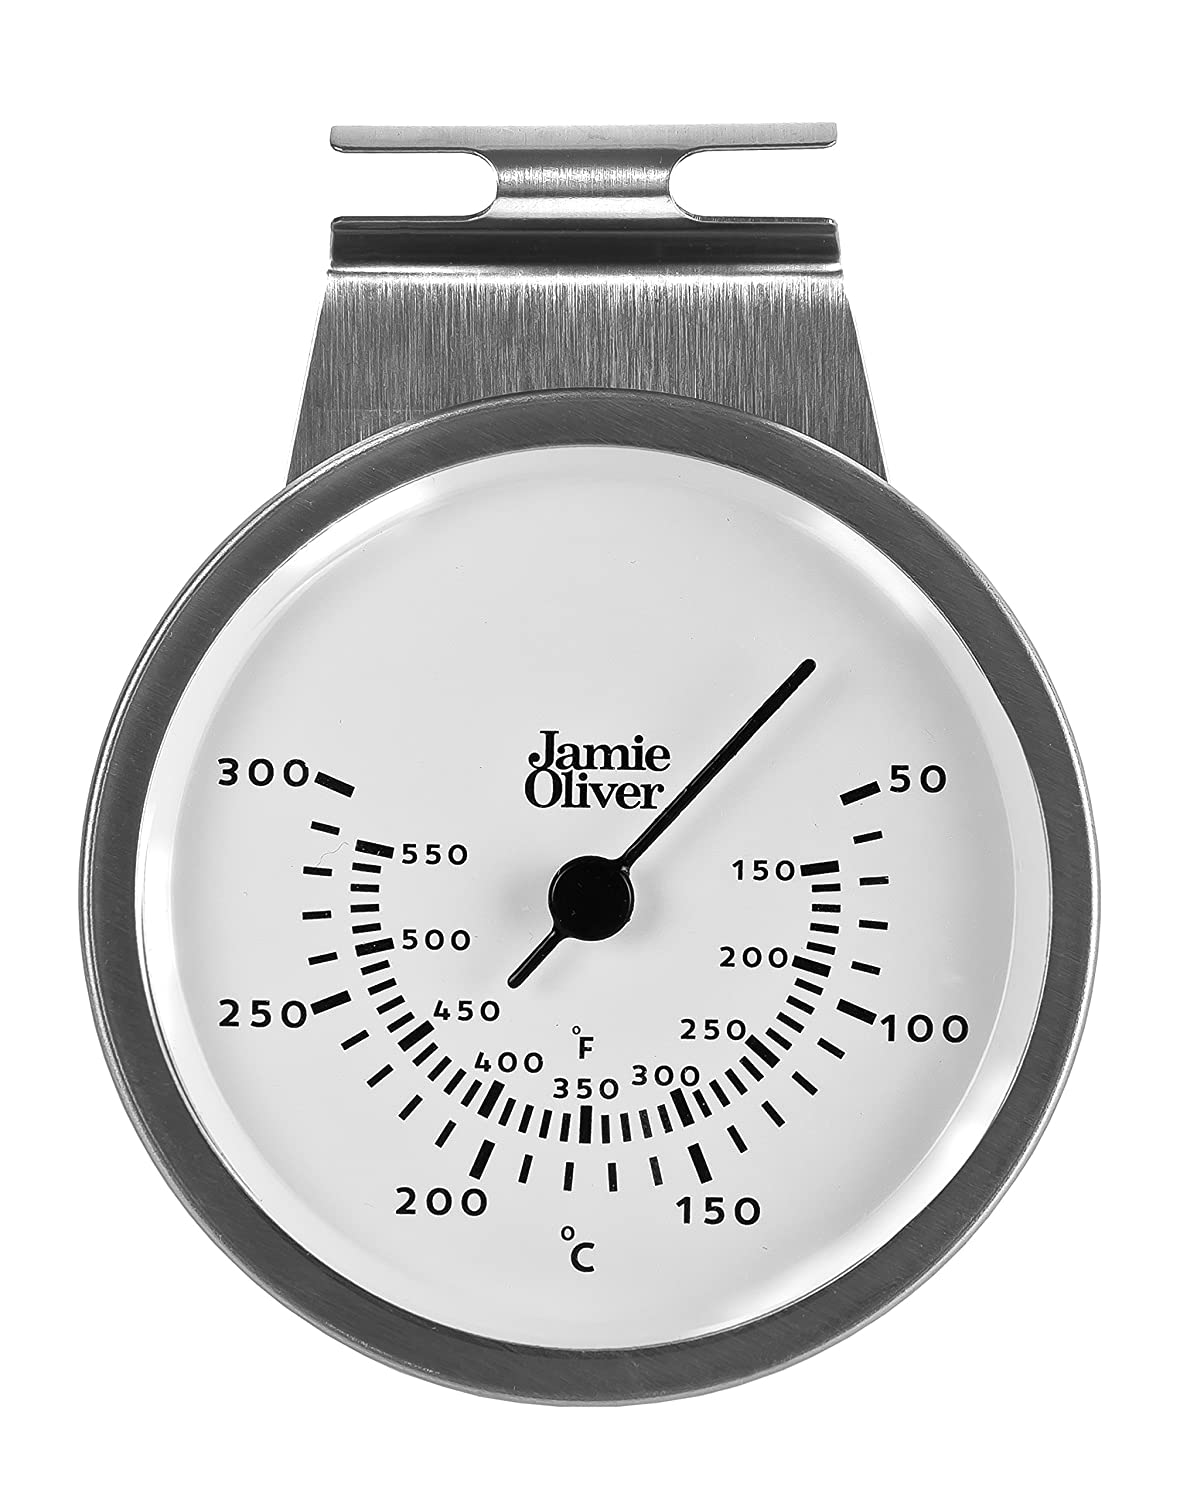 Jamie Oliver Oven Thermometer, Stainless Steel, Silver, 2.6 x 7.5 x 8.5 cm DKB JB6320